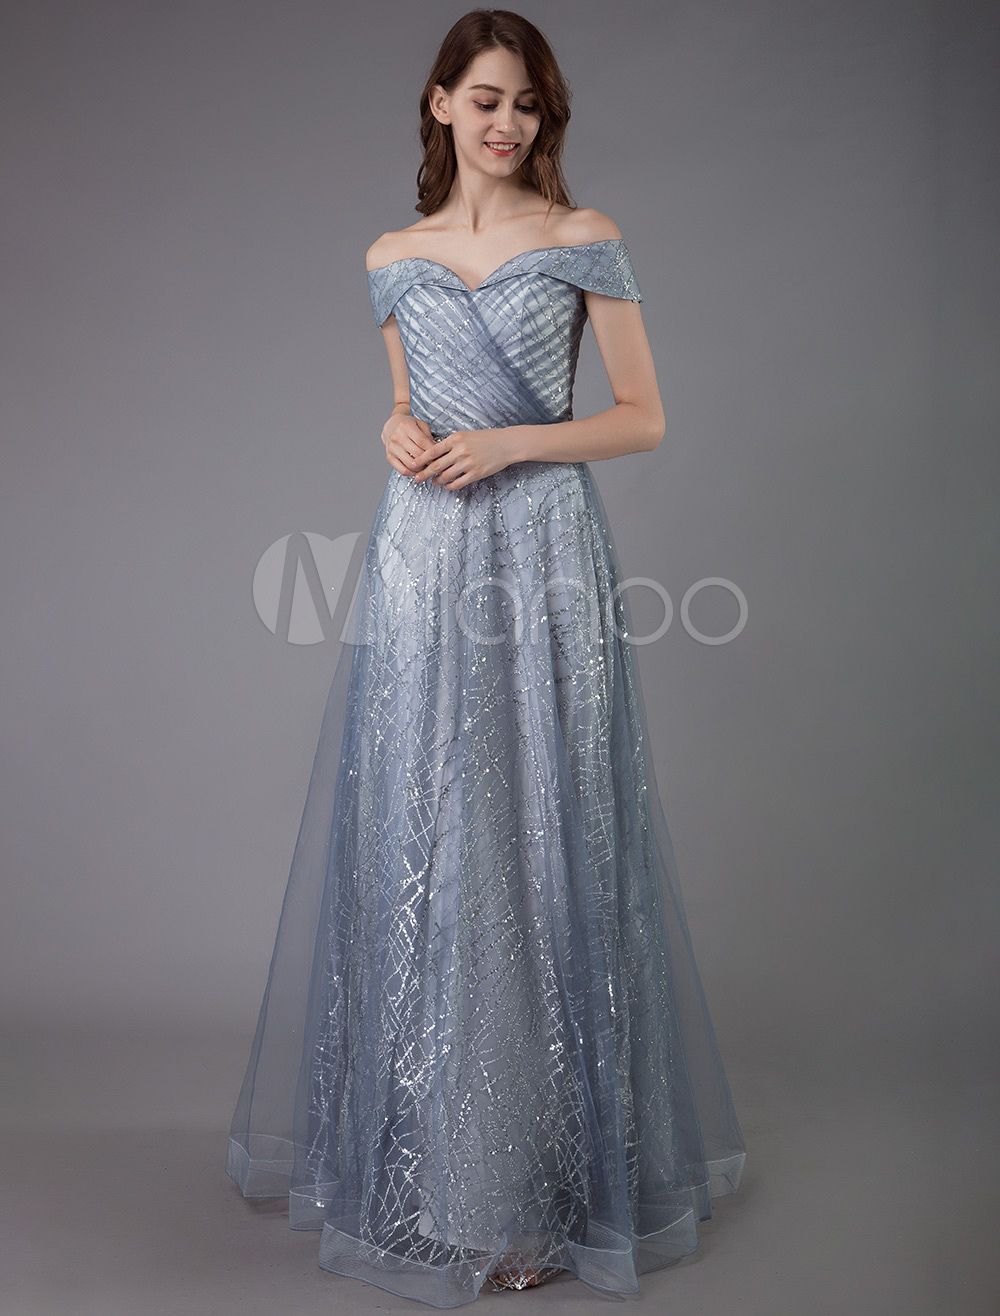 latest discount low price sale best authentic Constellation Dress Grey Sequin Prom Dress 2020 A Line Off Shoulder Short  Sleeves Pleated Tulle Formal Dinner Graduation Party Dresses